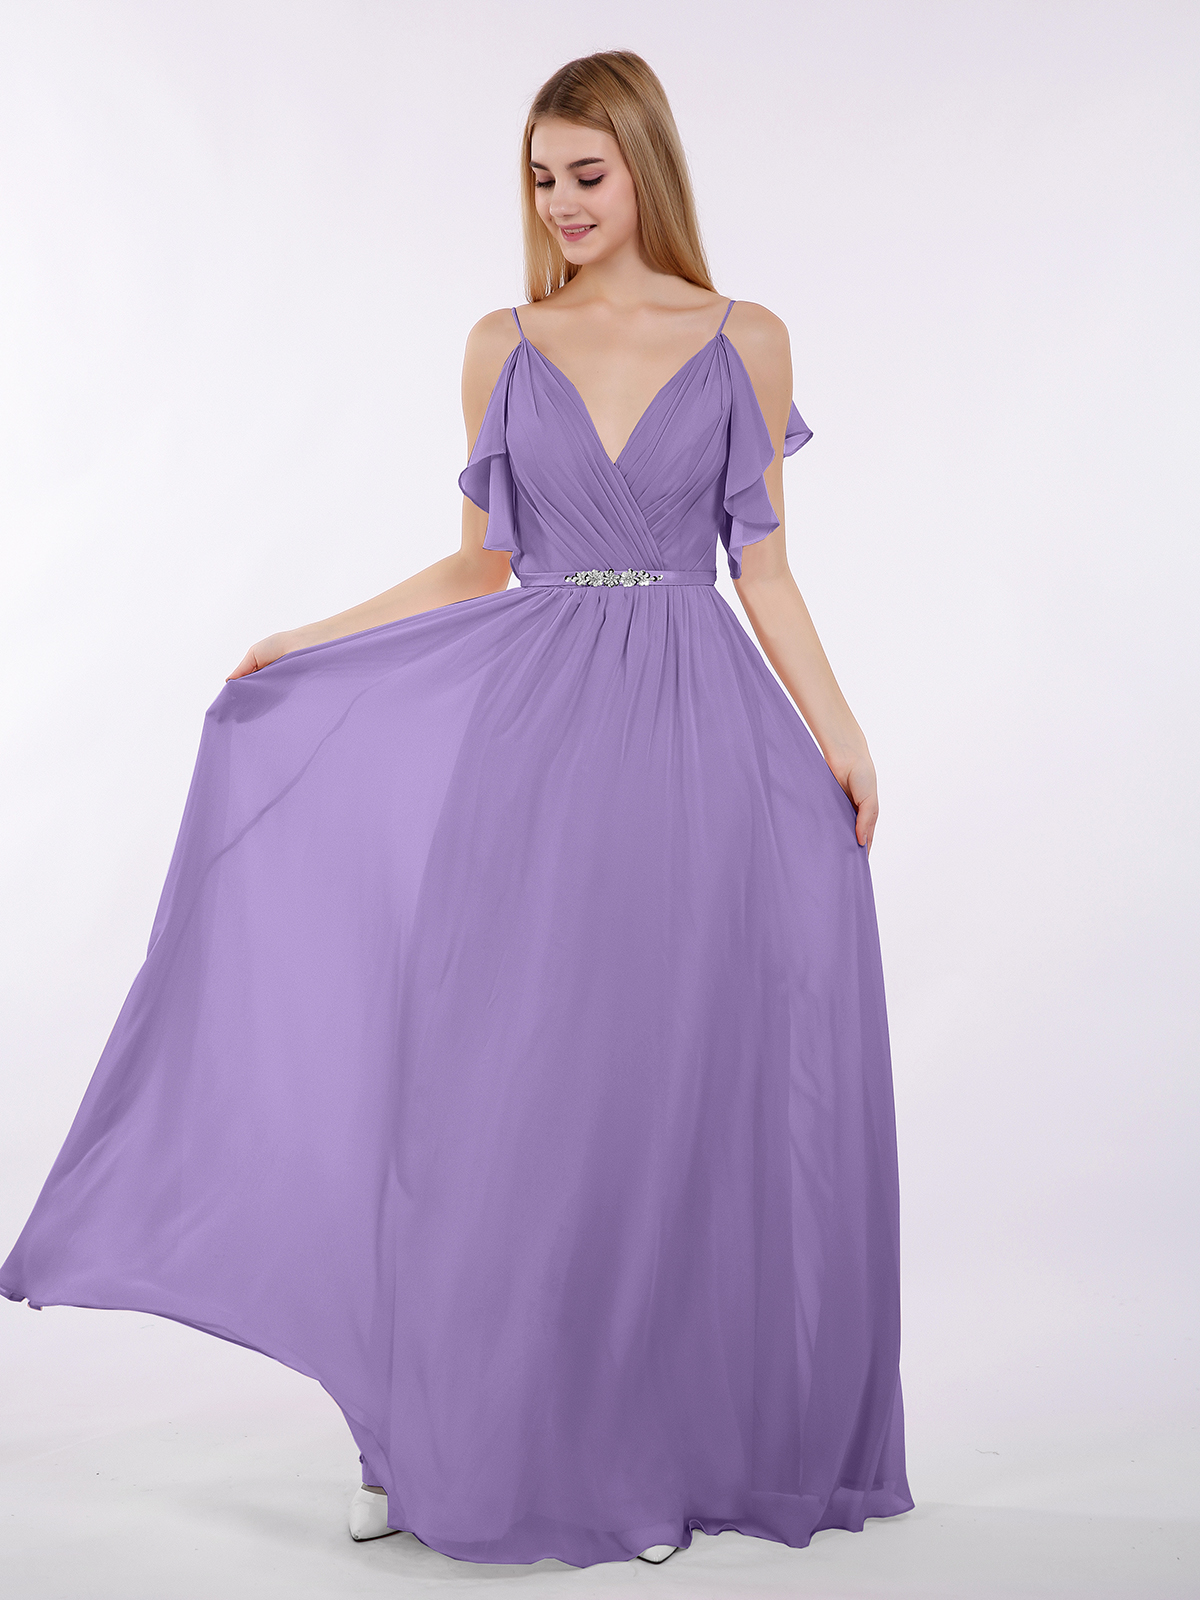 84cad52c26e9 Stormy Gill Spaghetti Strap Chiffon Dress with V-neck | BABARONI